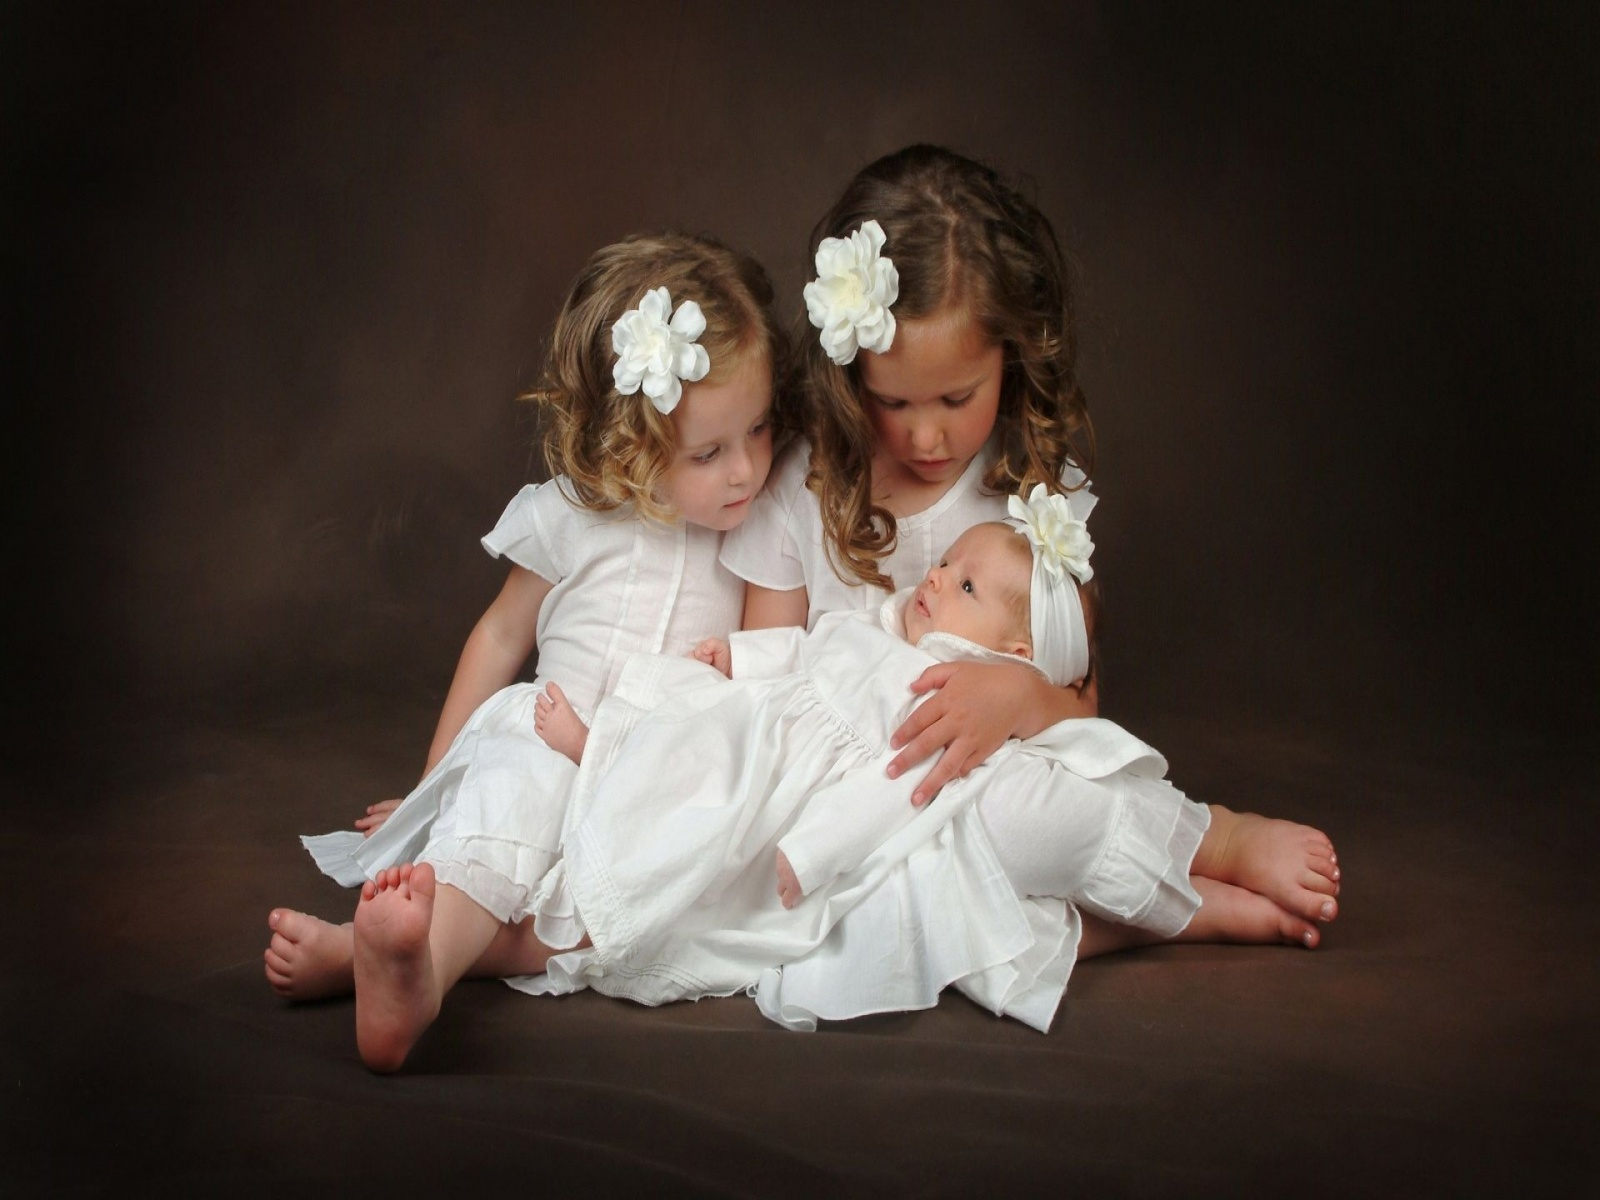 Sister Love Images Wallpaper : Little Sister Love Wallpapers - 1600x1200 - 339586